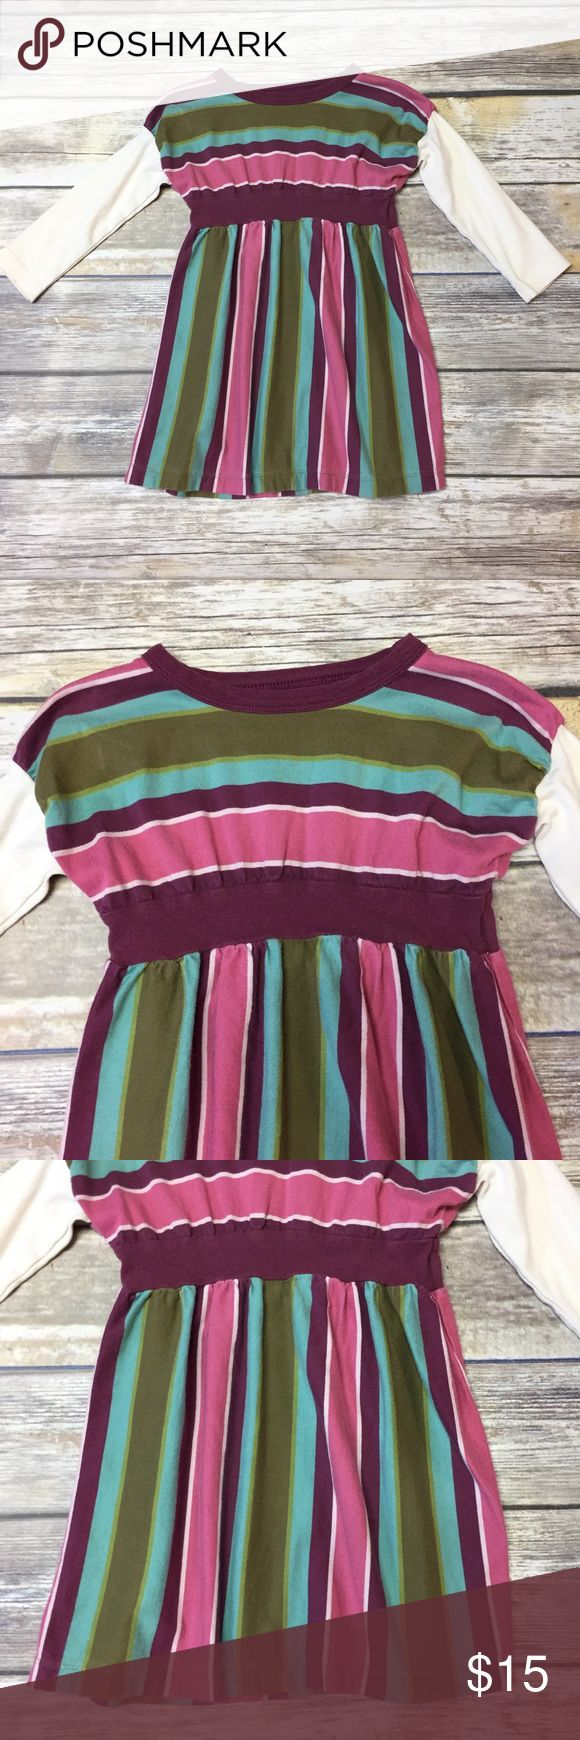 Tea Collection Striped Dress Pink, burgundy and green striped dress with white long sleeves. VGUC Tea Collection Dresses